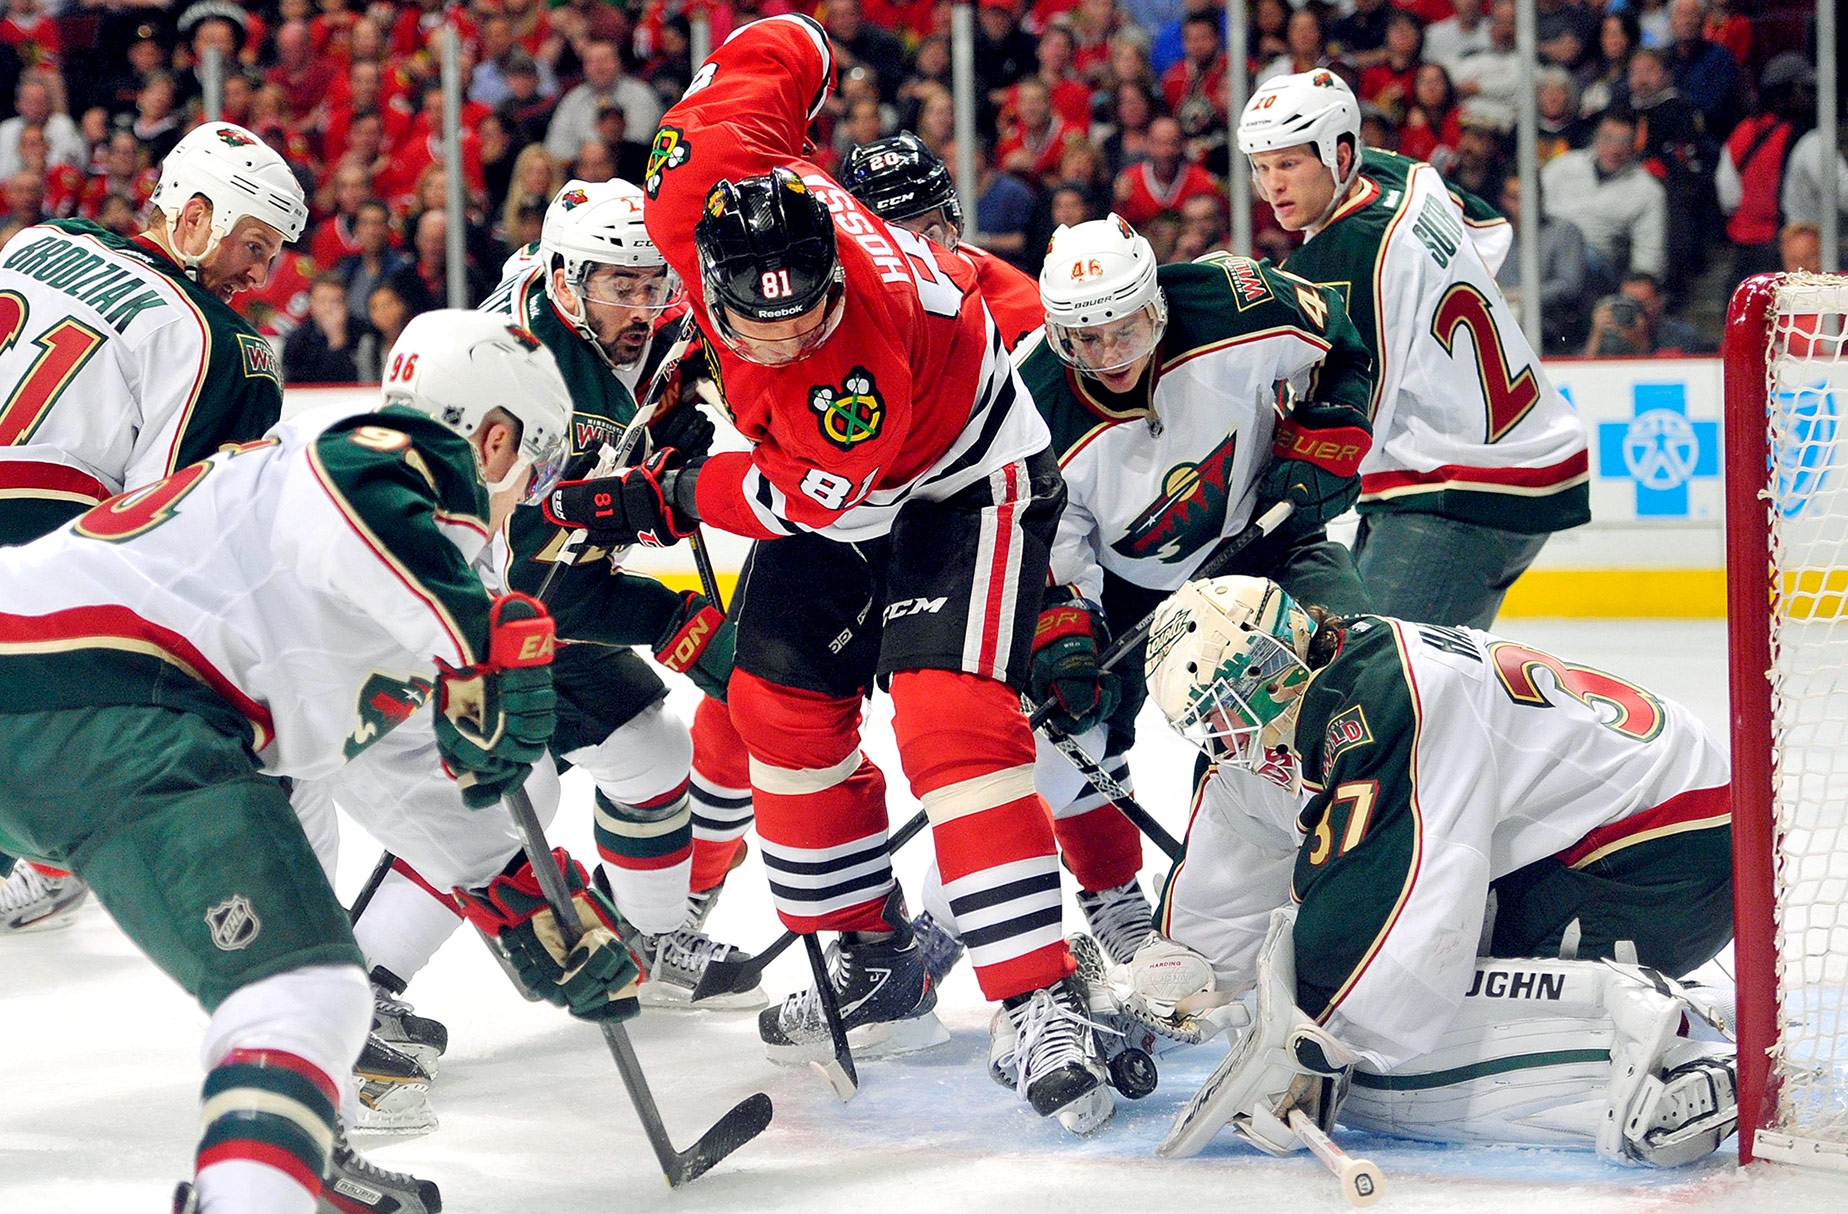 Blackhawks-Wild Game 1